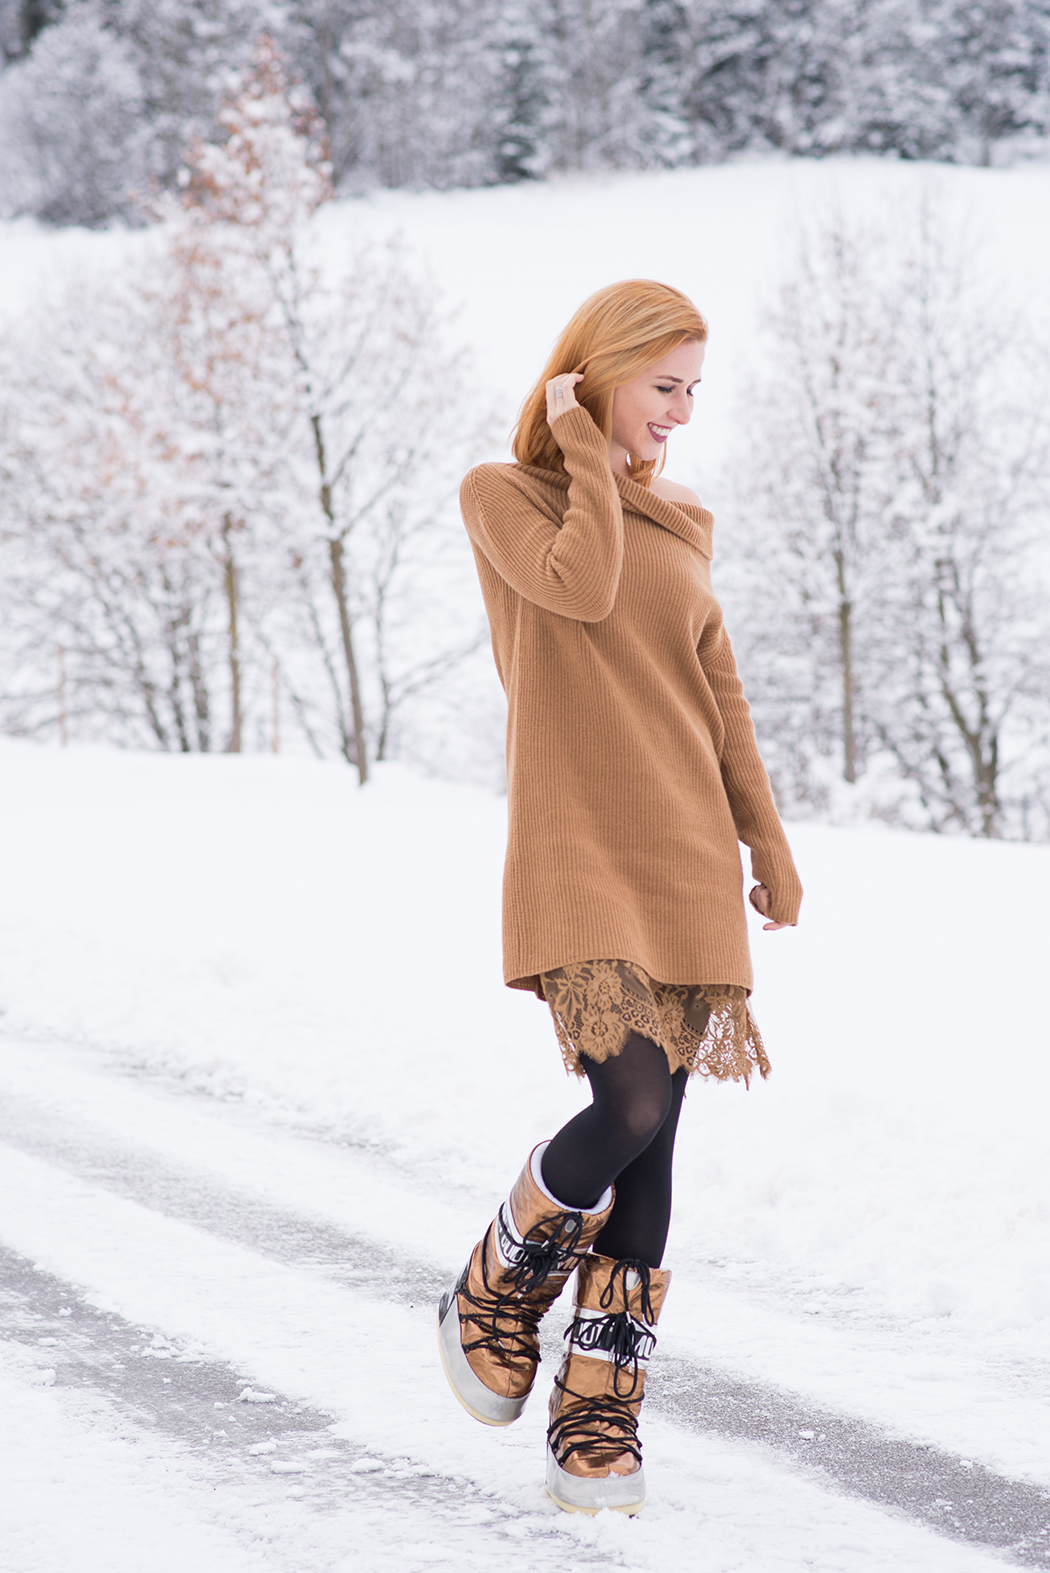 Fashionblog-Fashionblogger-Fashion-Blog-Blogger-Lifestyle-Moon-Boot-kupfer-bronze-Twin-Set-Strickkleid-Spitze-1-web